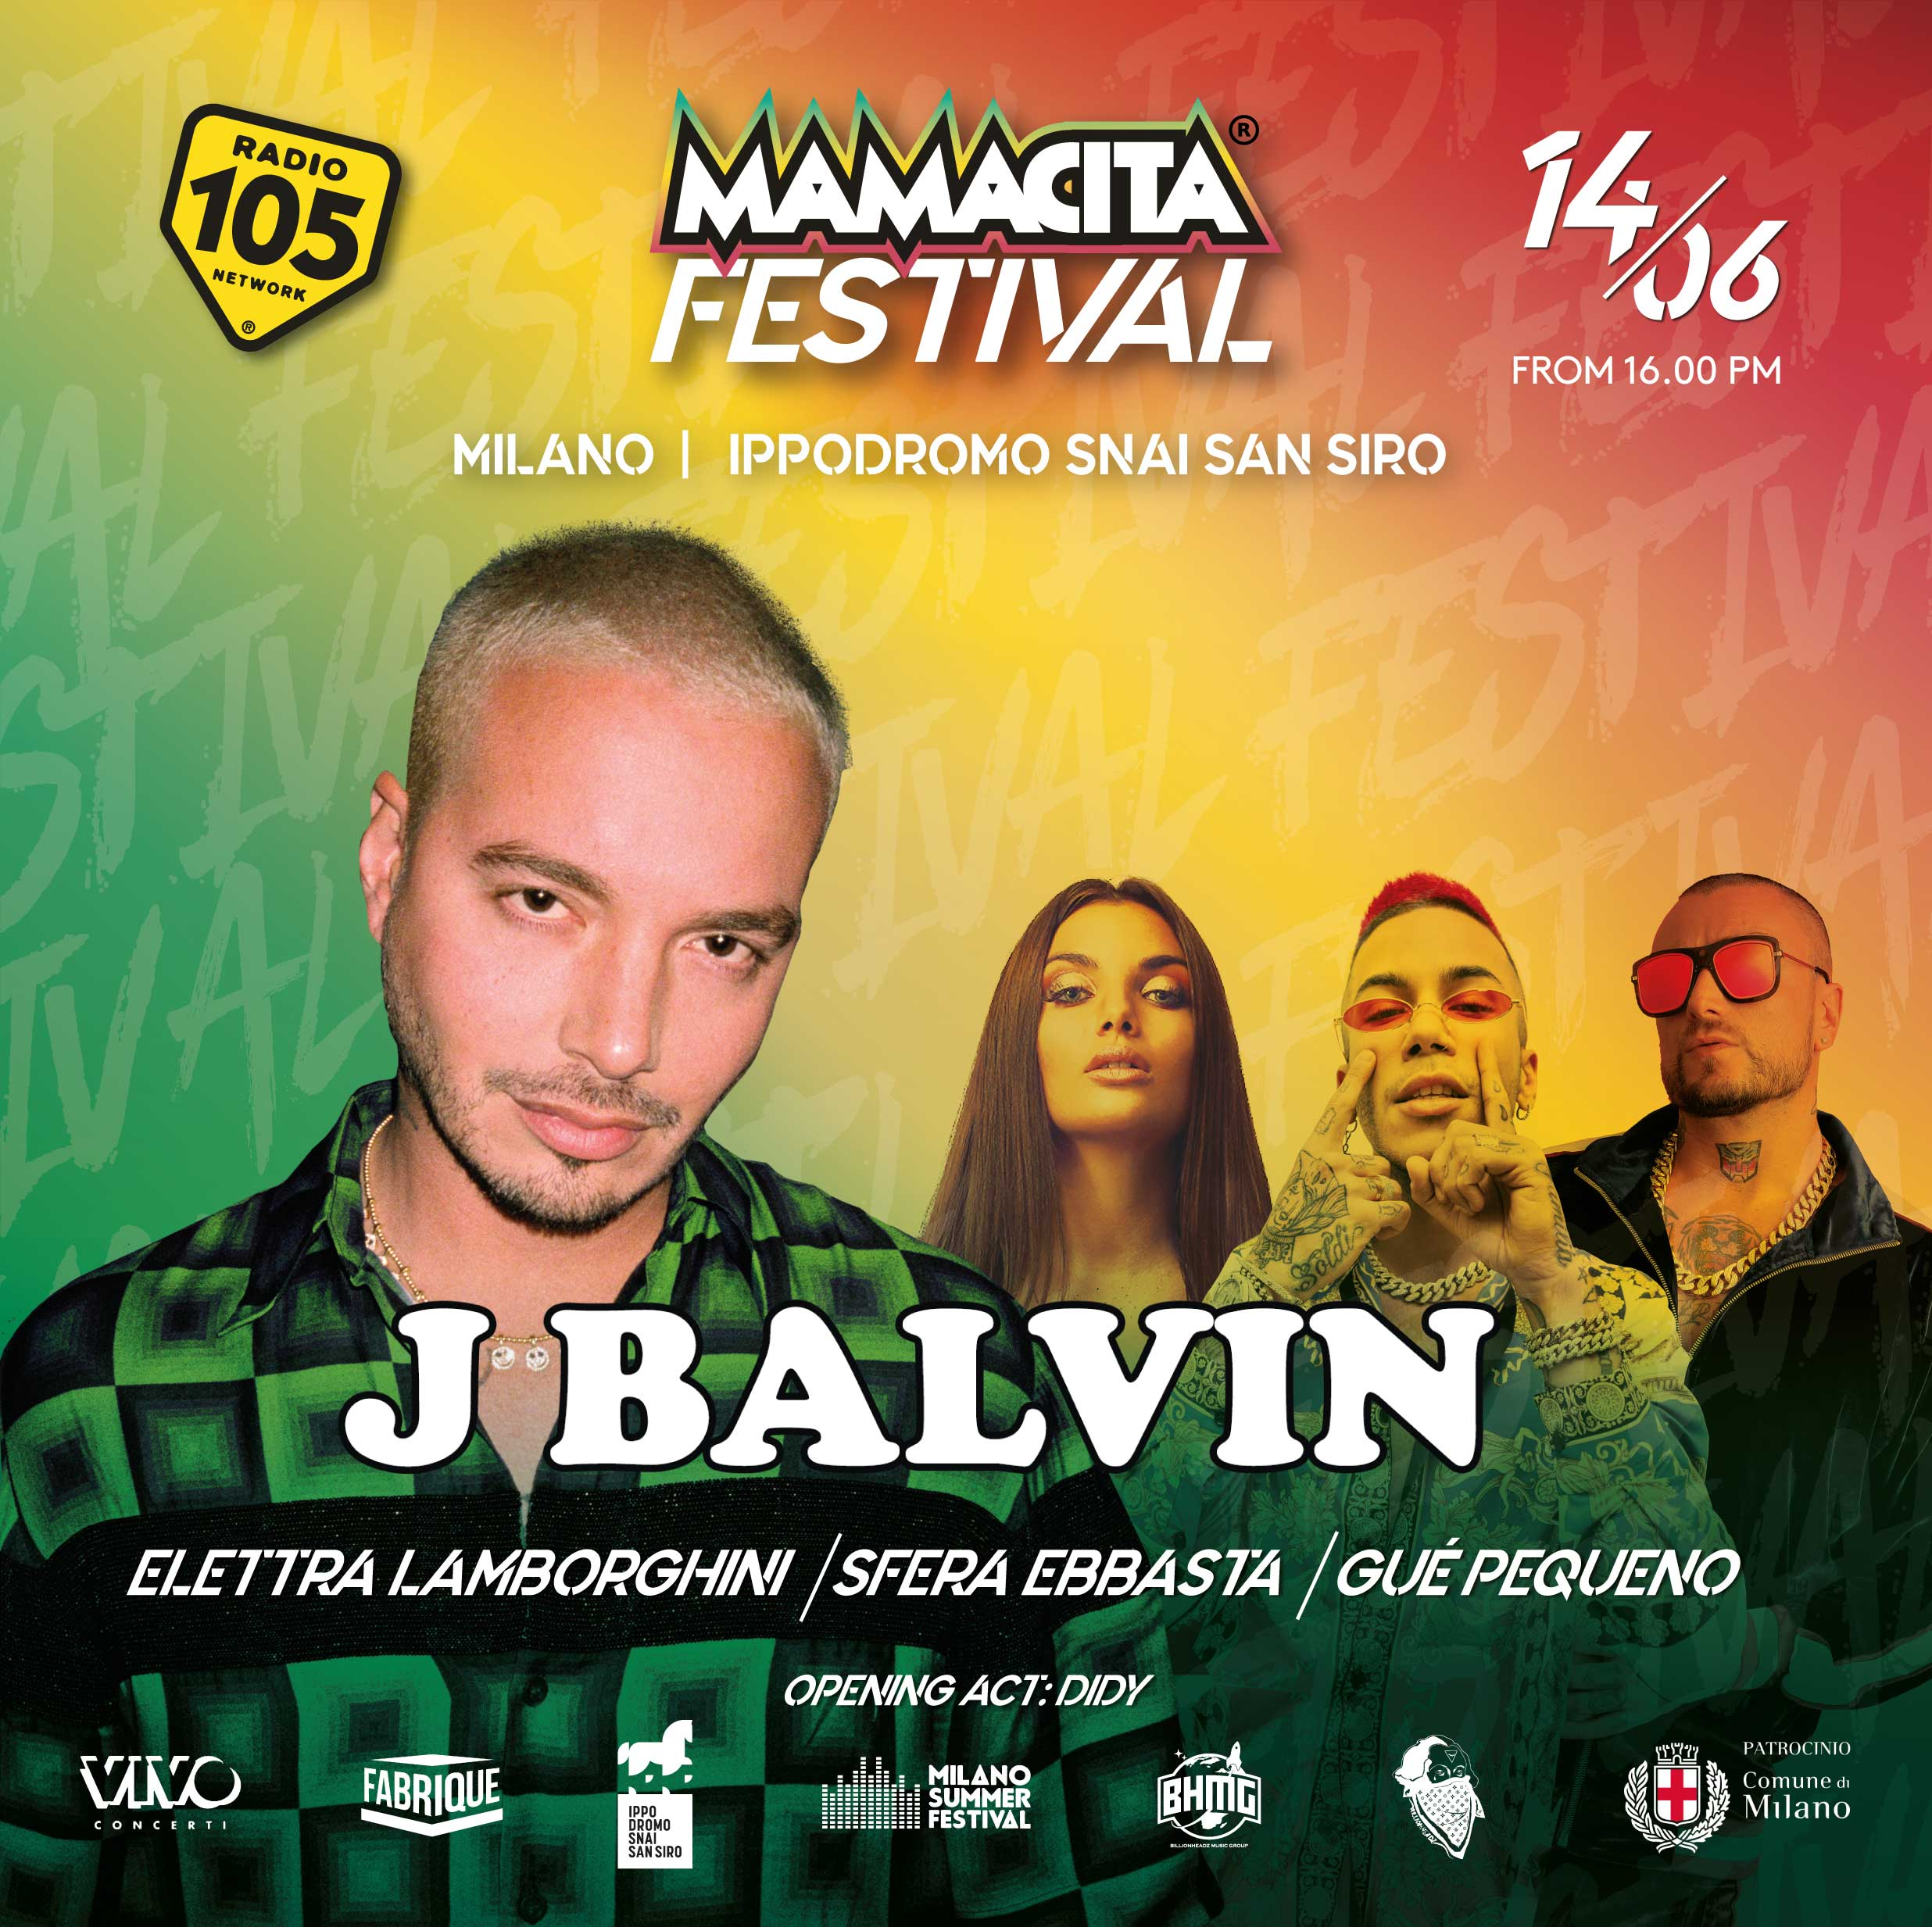 MAMACITA FESTIVAL – J. BALVIN and many more, 14 giugno